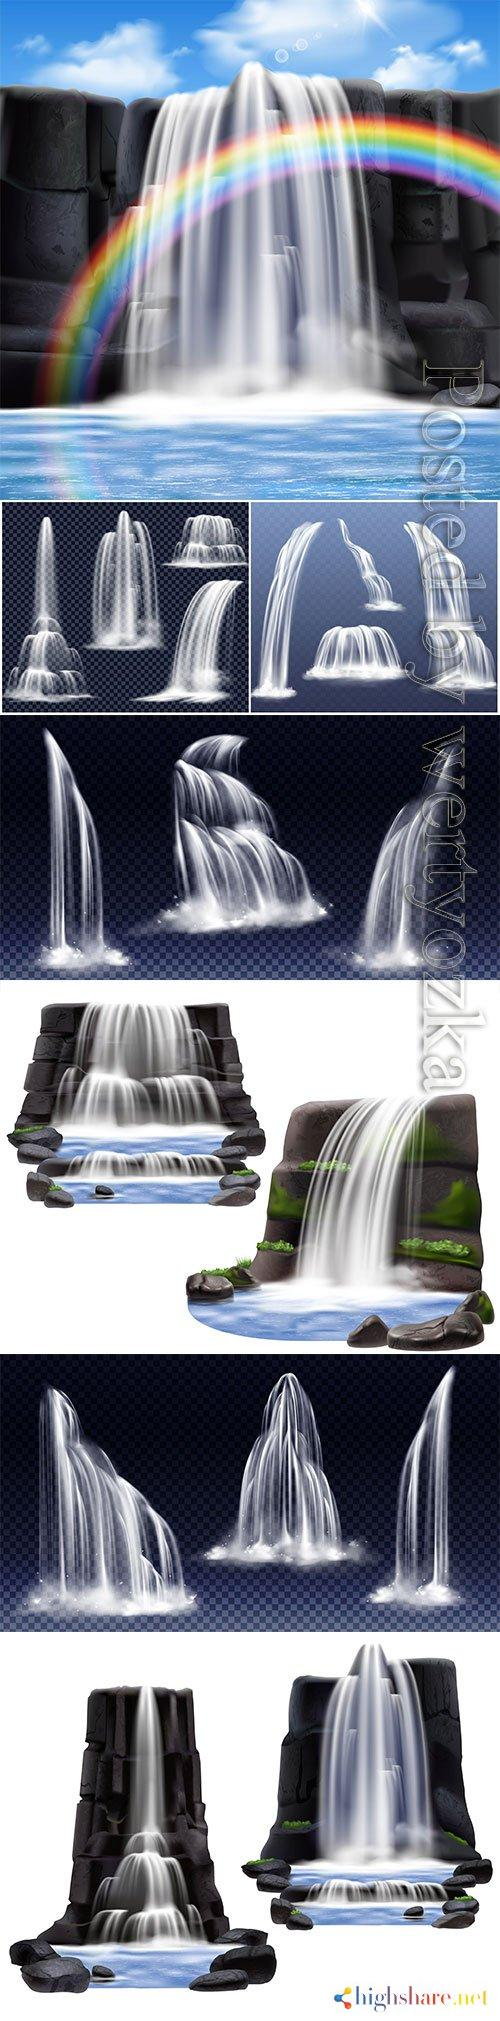 waterfalls realistic compositions vector design 5f409d4f8fe52 - Waterfalls realistic compositions vector design